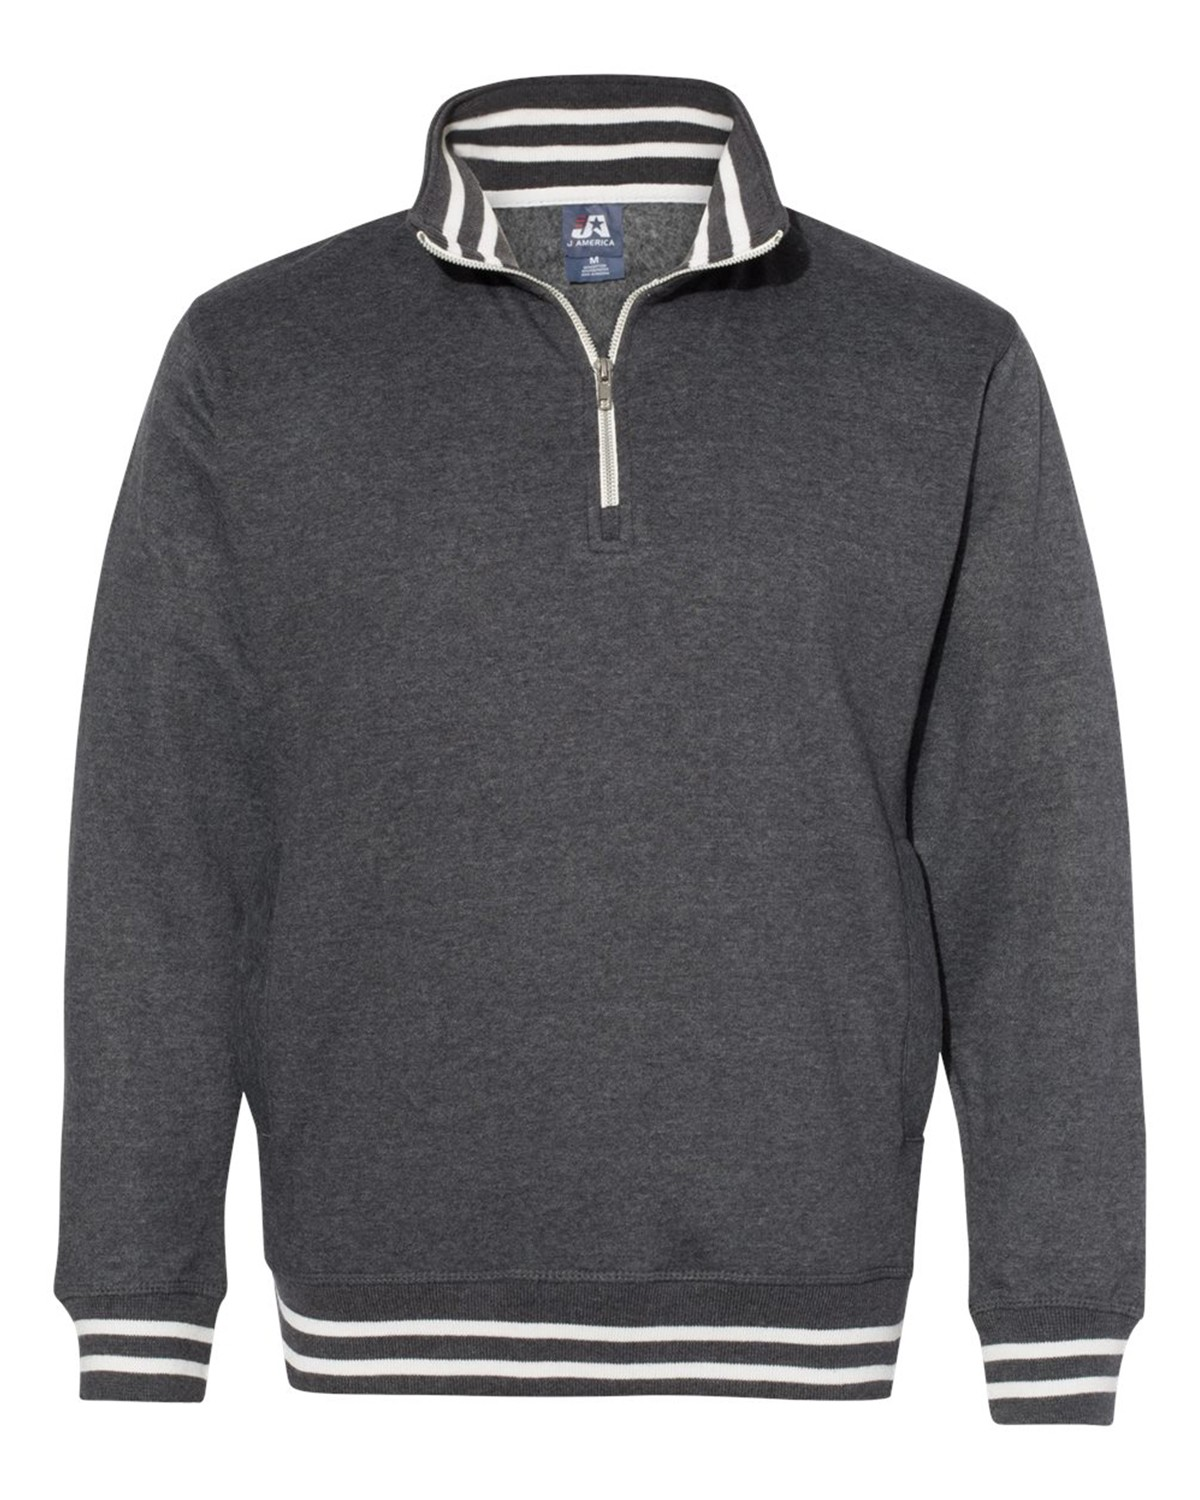 J America 8650 Men's Relay Fleece Quarter-Zip Sweatshirt - Black - S from J America